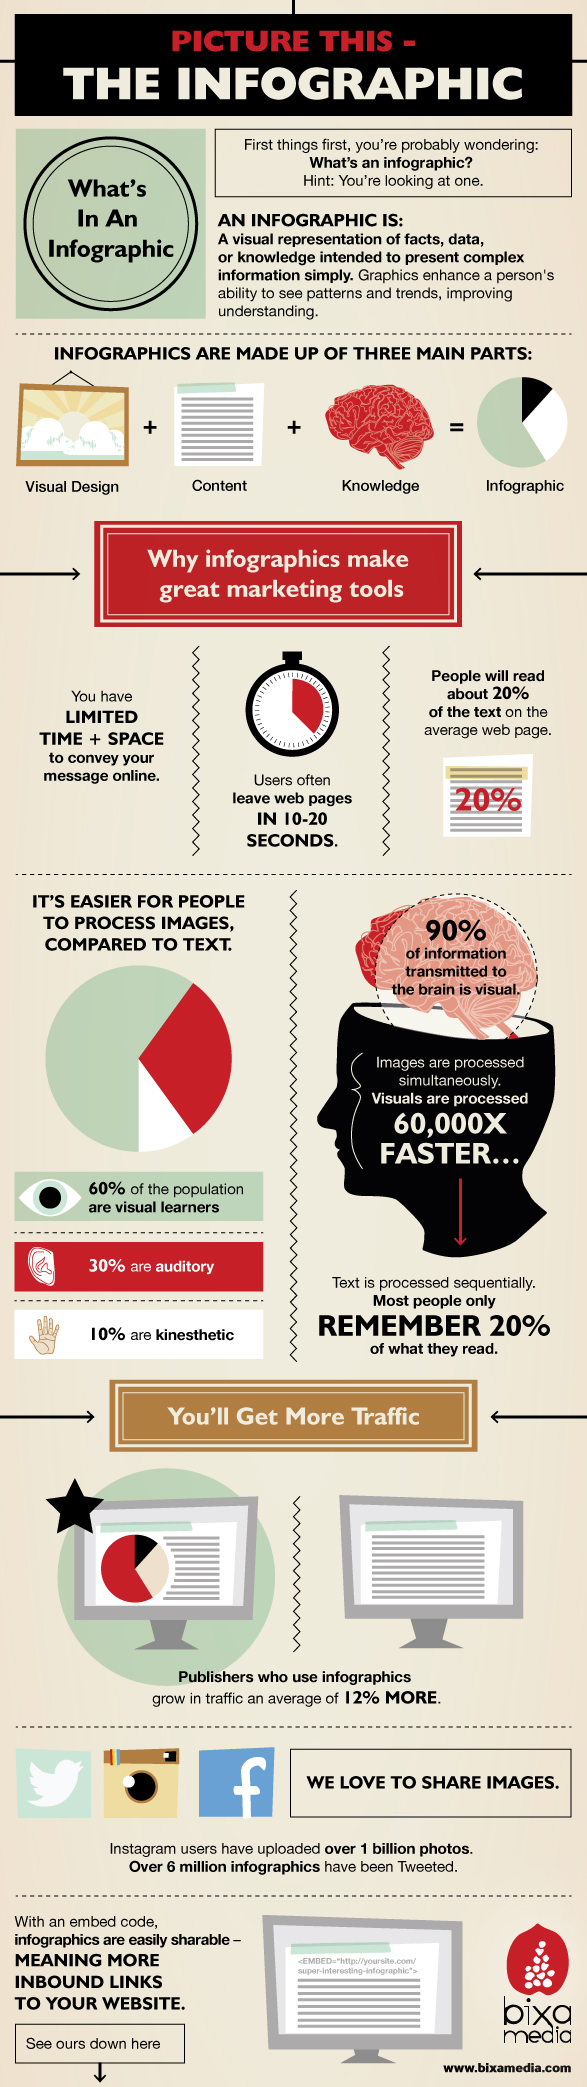 What Is An Infographic? - Bixa Media